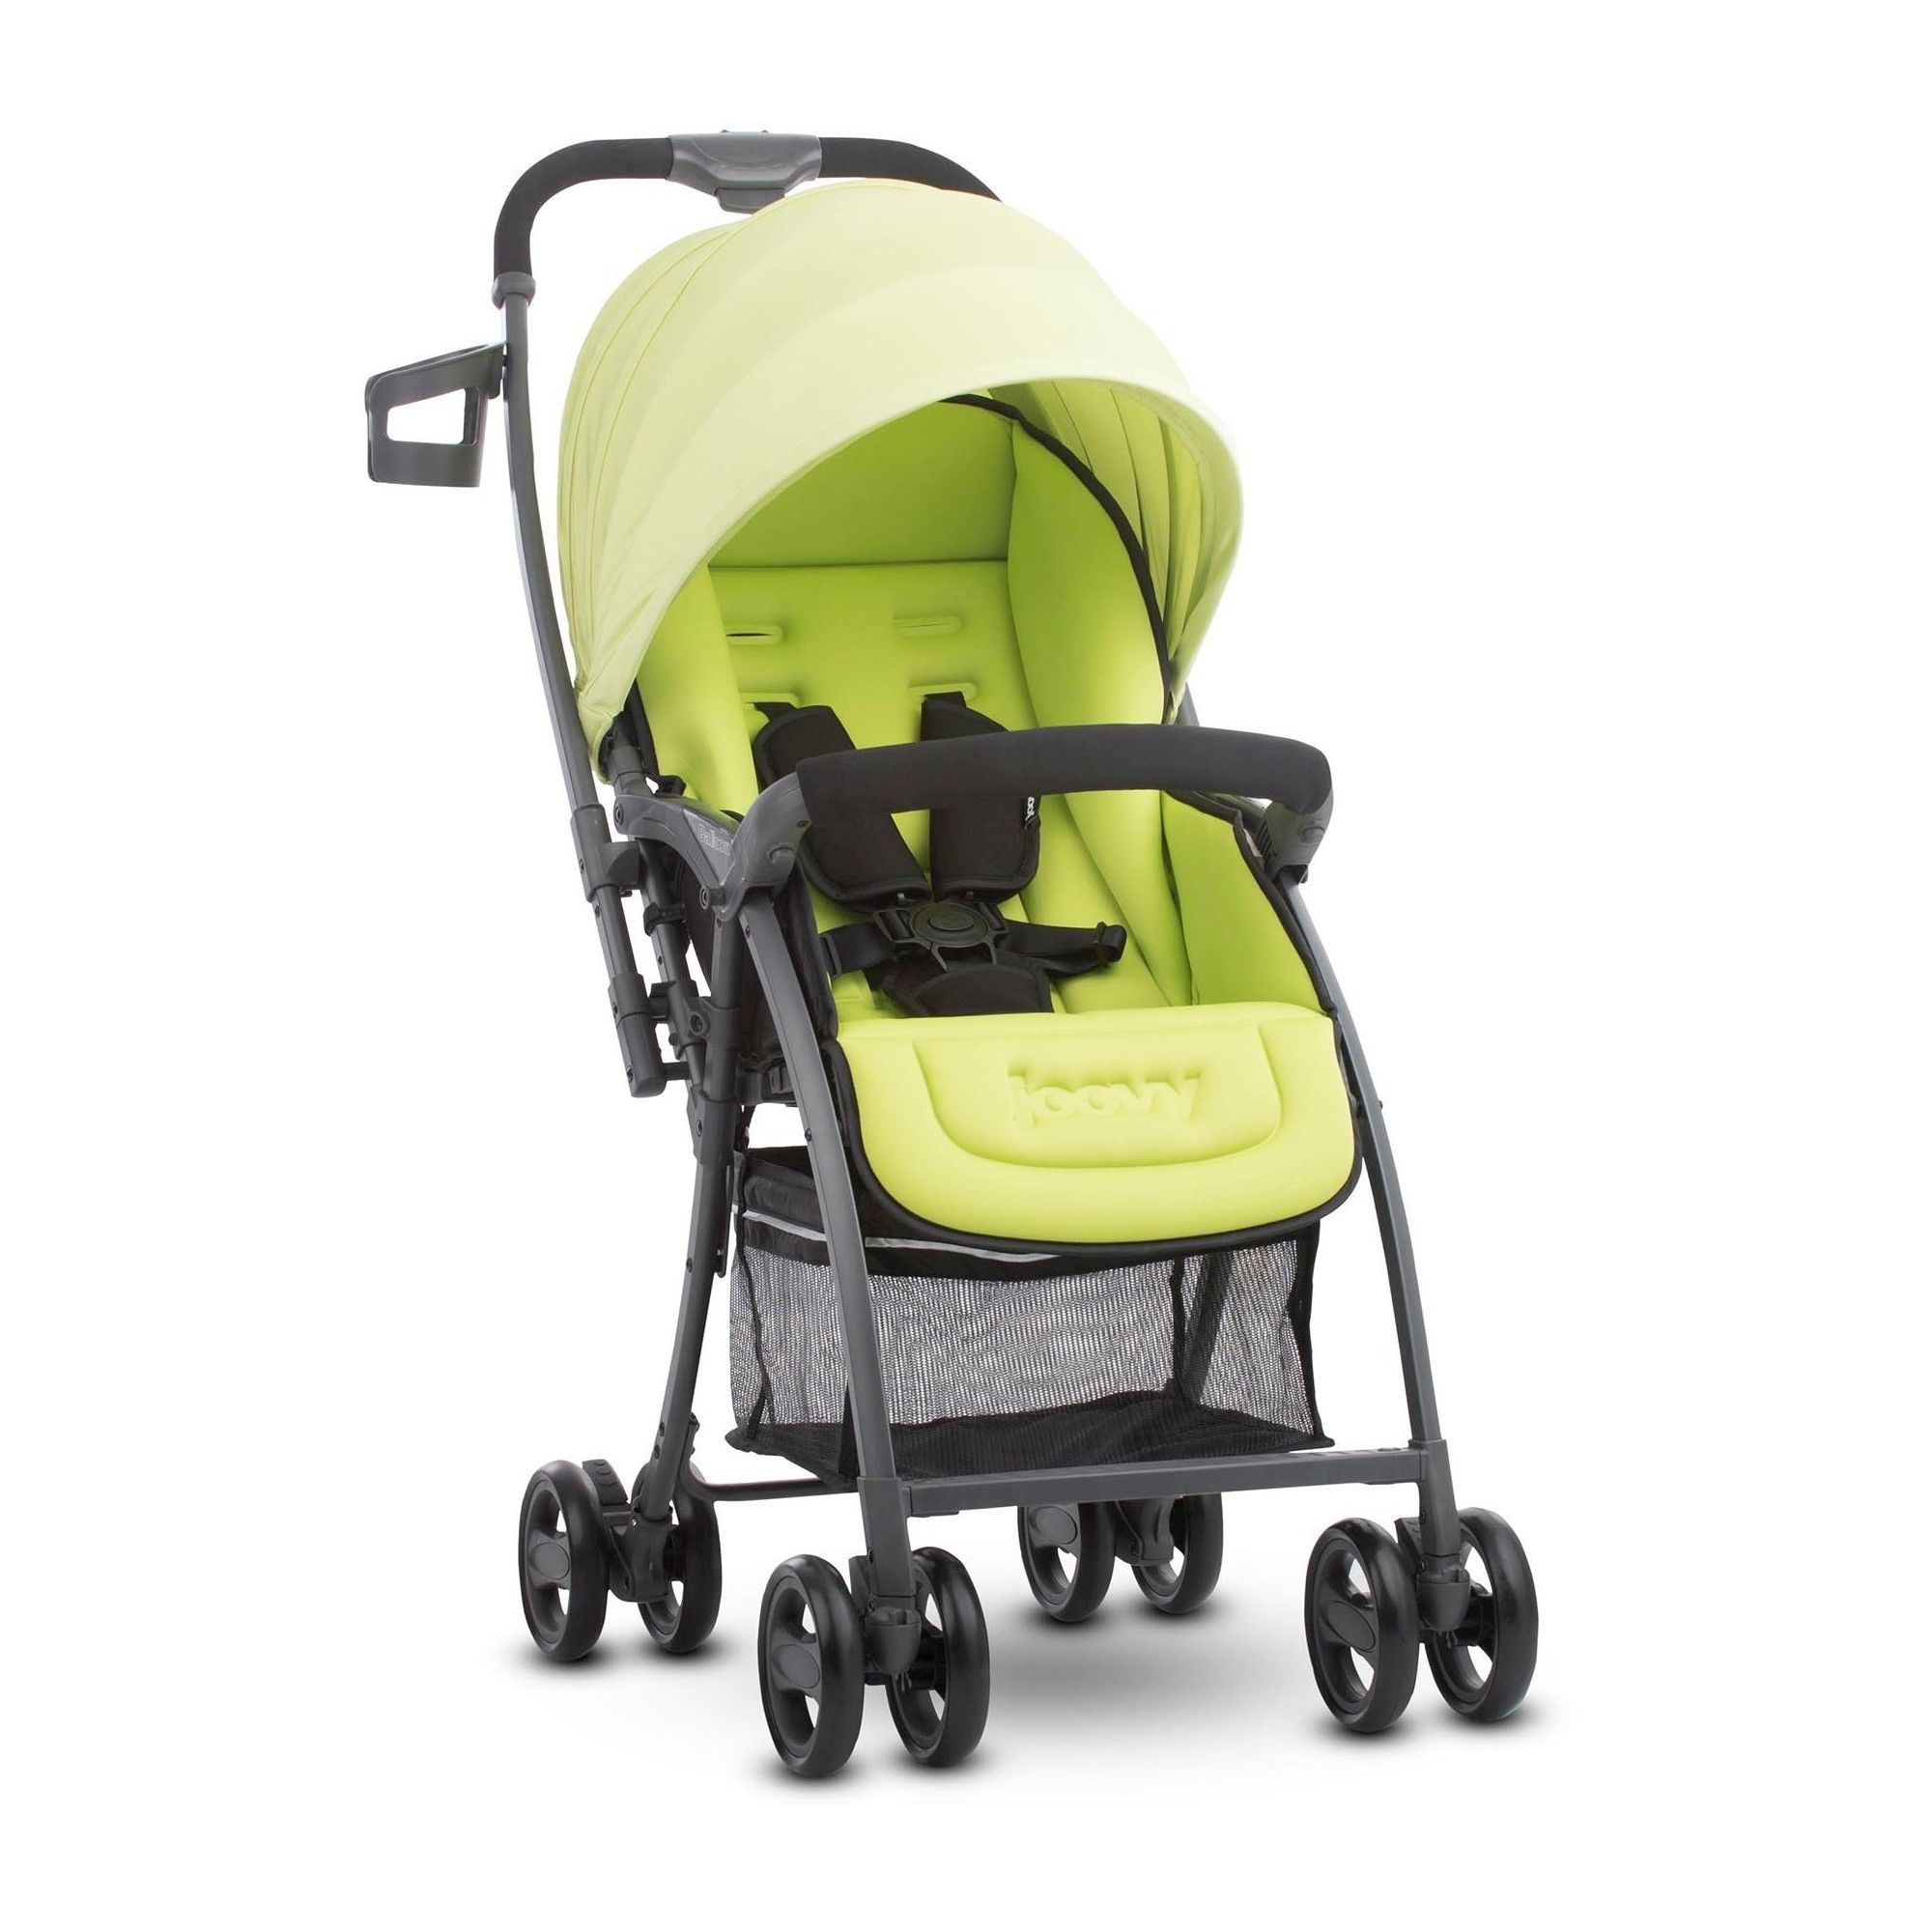 Joovy Balloon Stroller Green Stroller, Baby travel